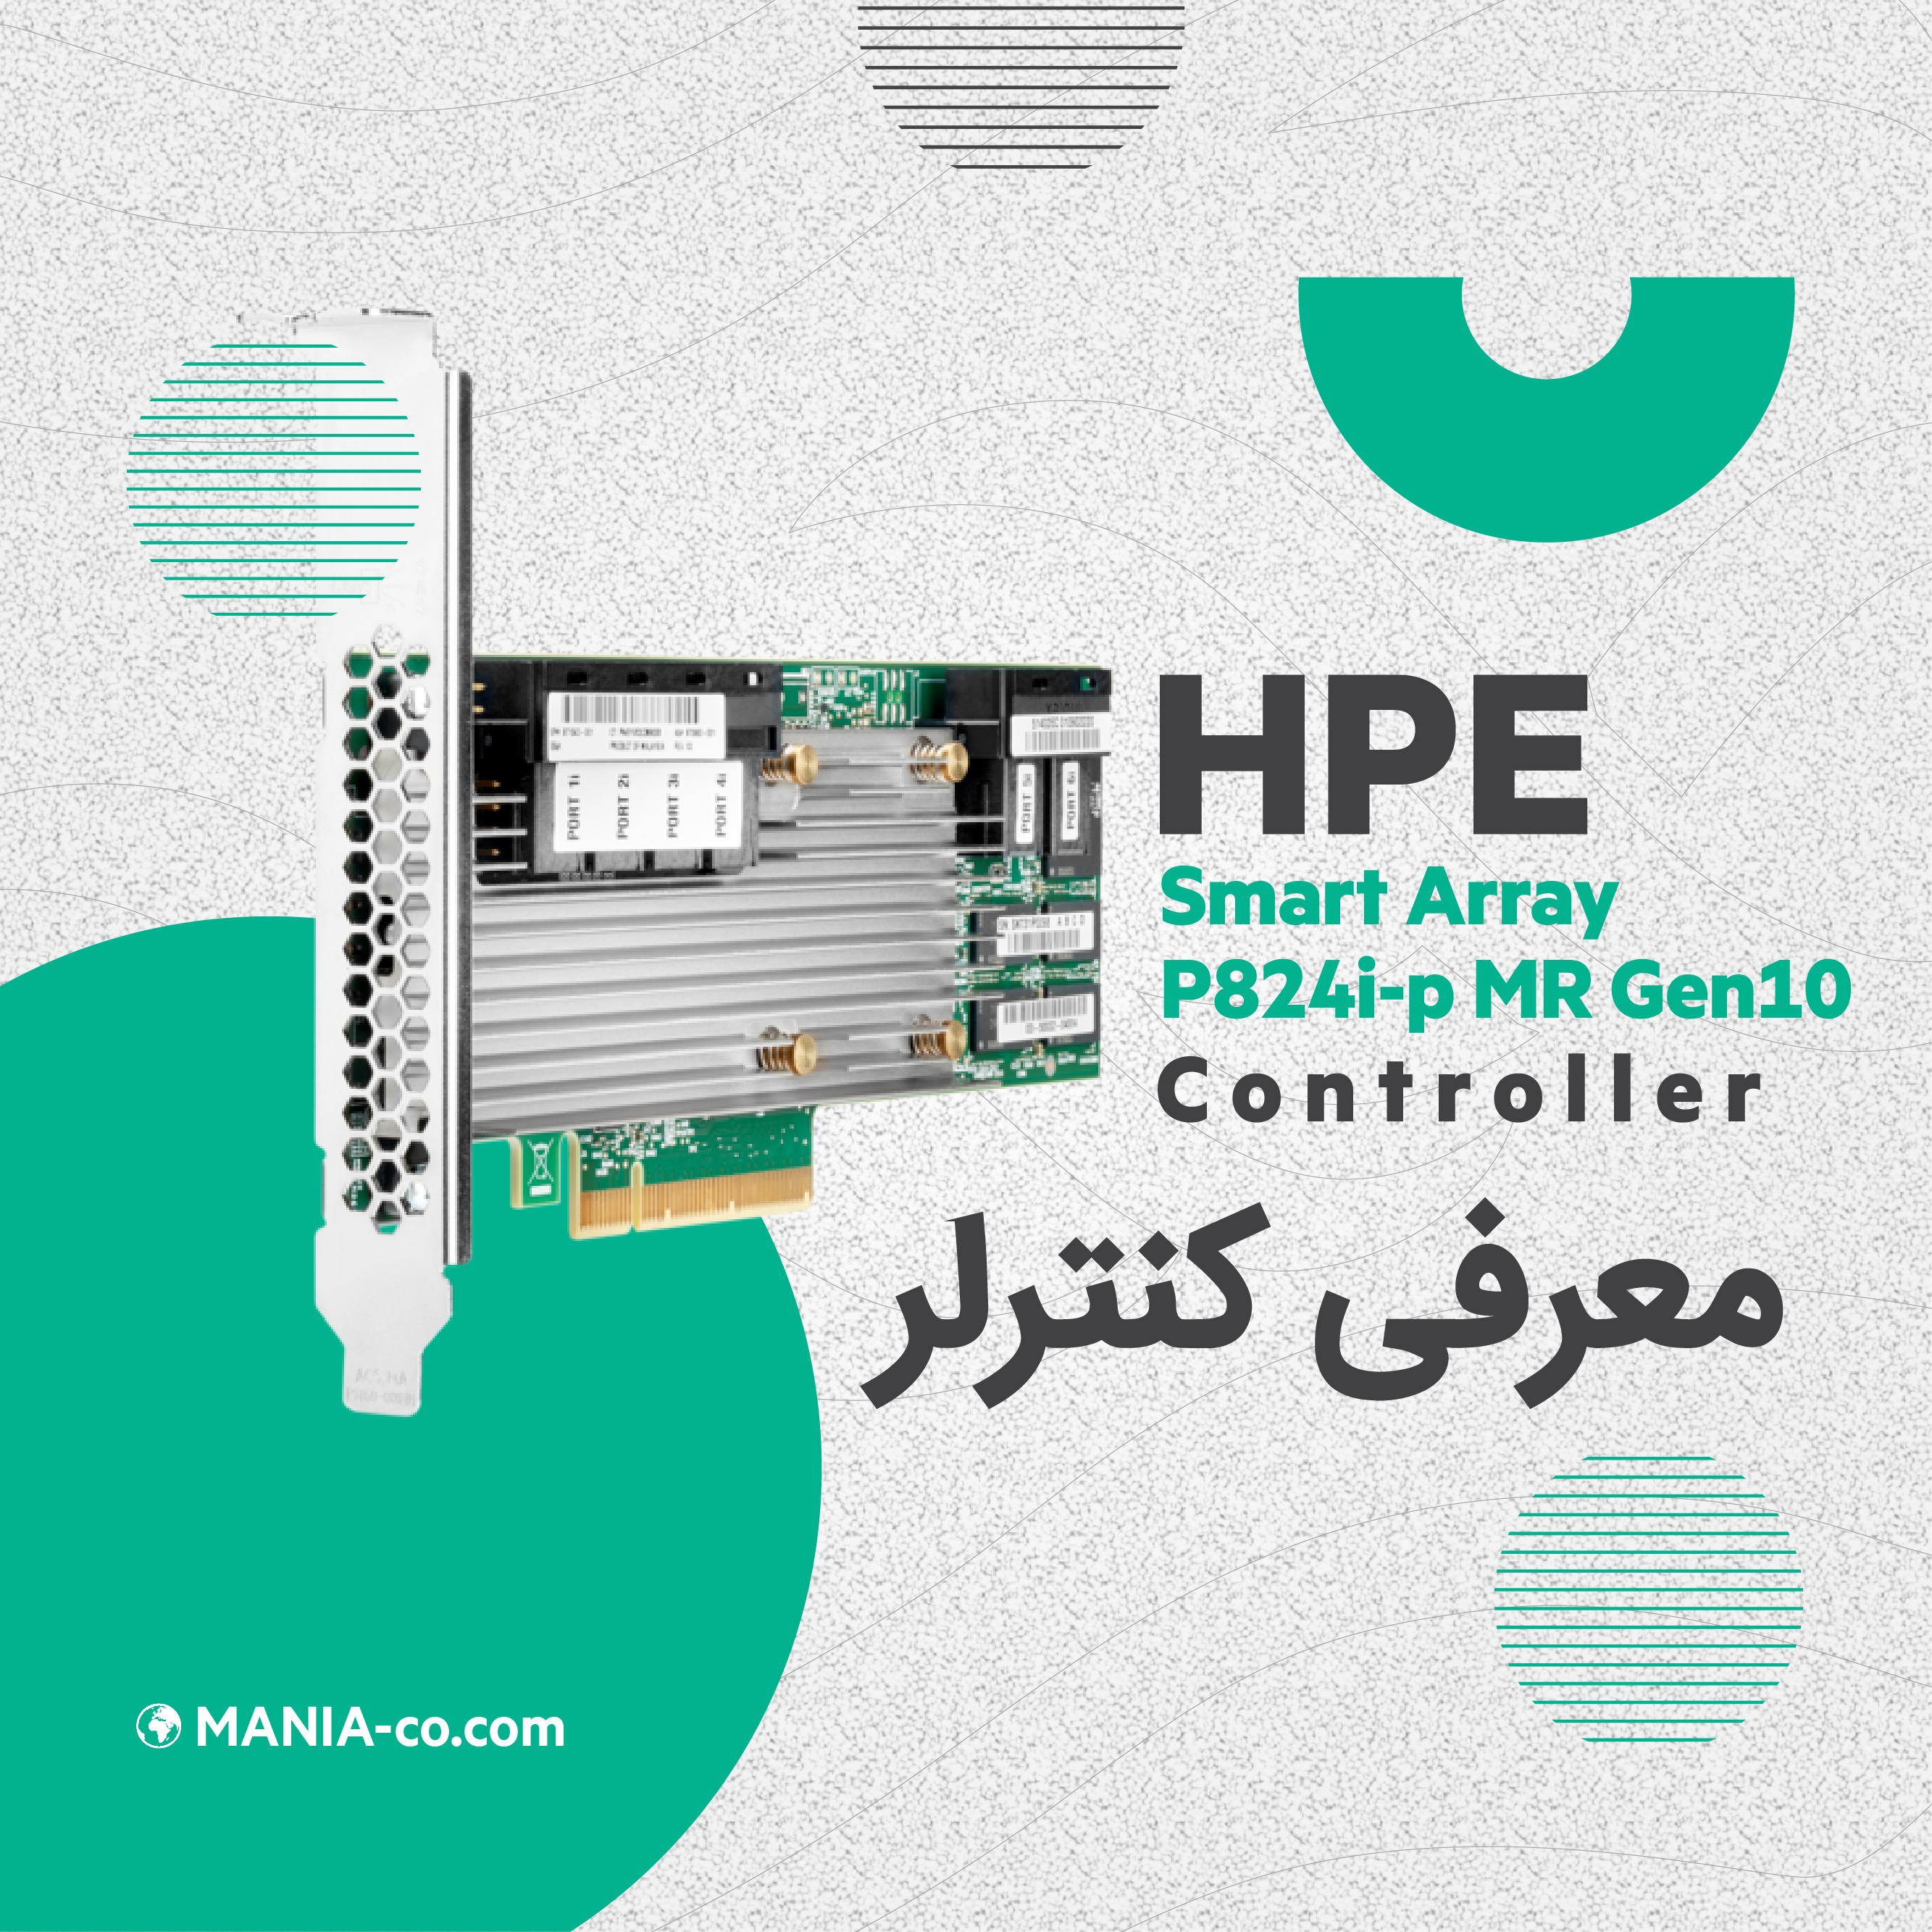 معرفی کنترلر HPE Smart Array P824i-p MR Gen10 Controller